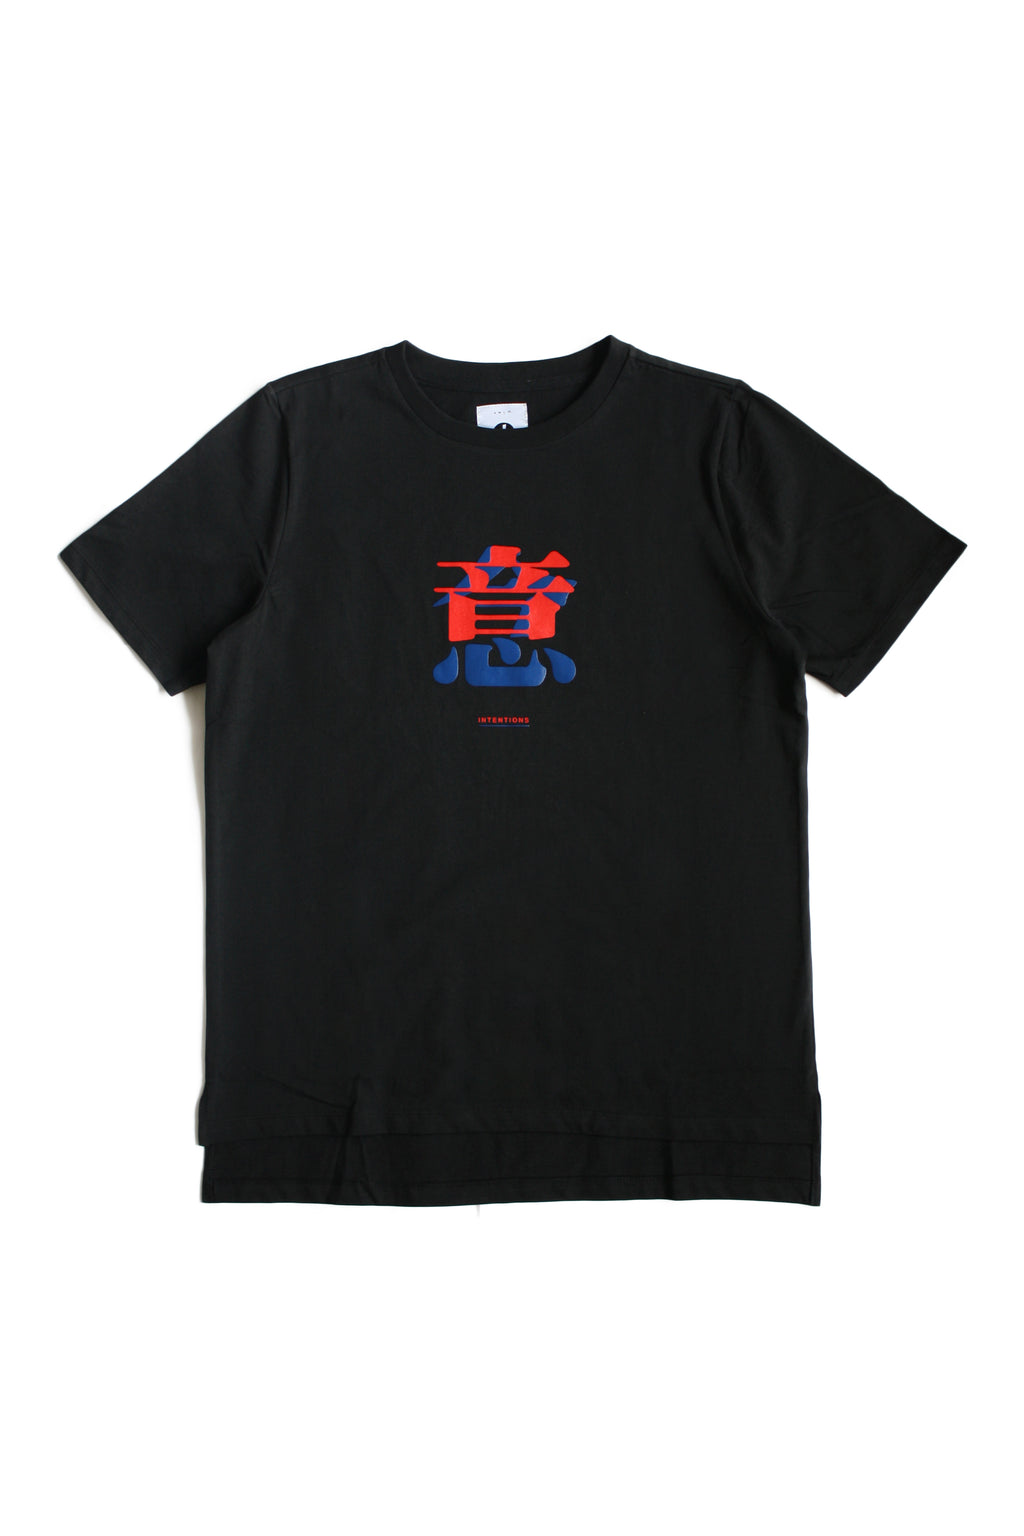 "1. ""INTENTIONS"" Black Tee"